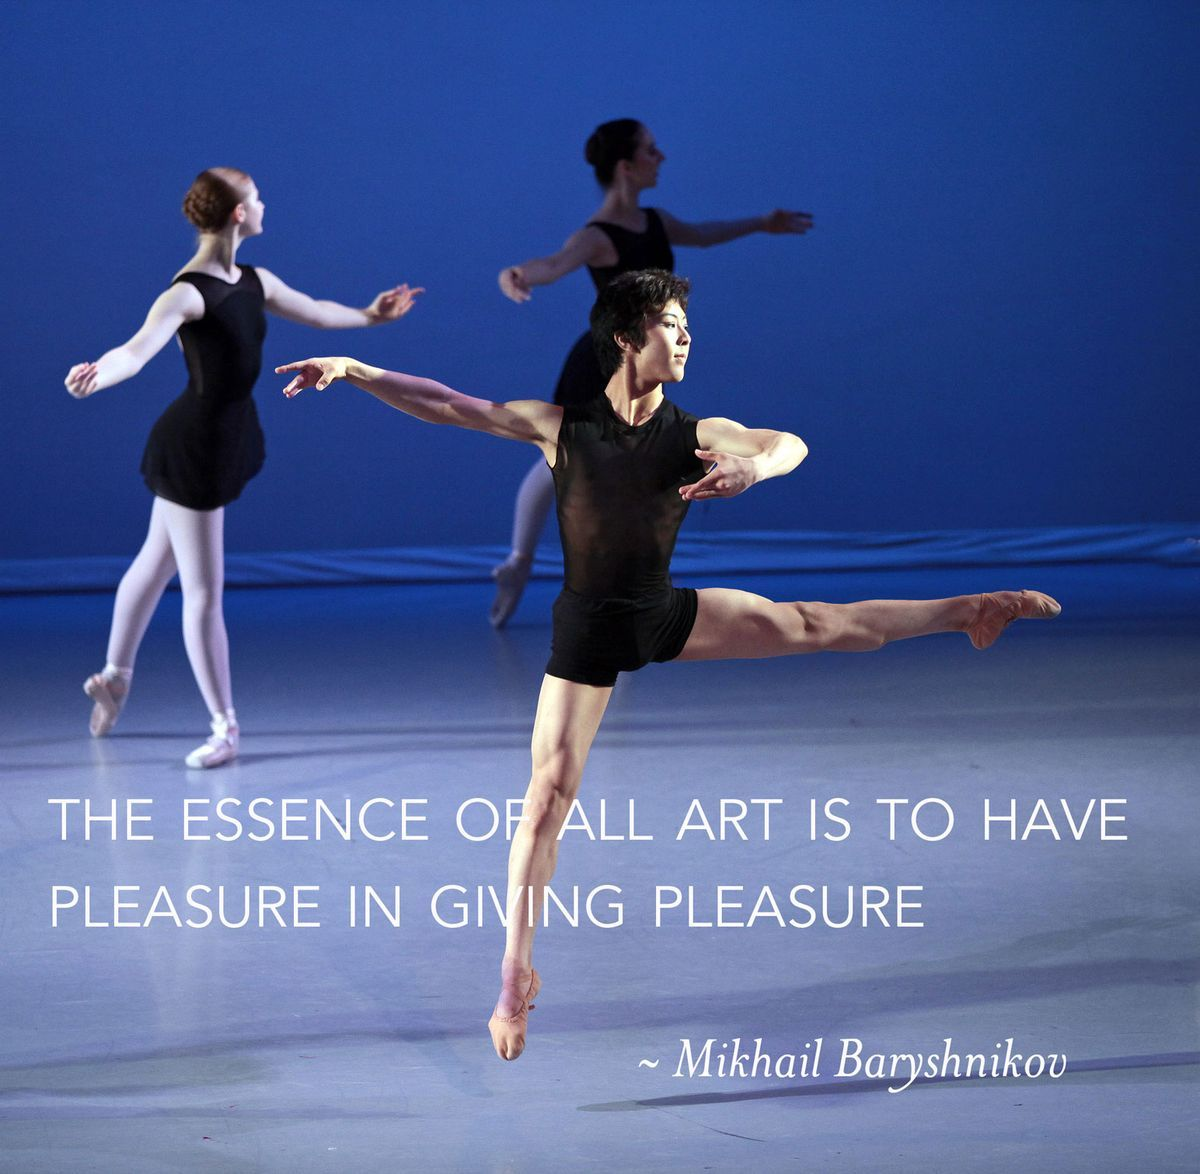 what inspires you to dance